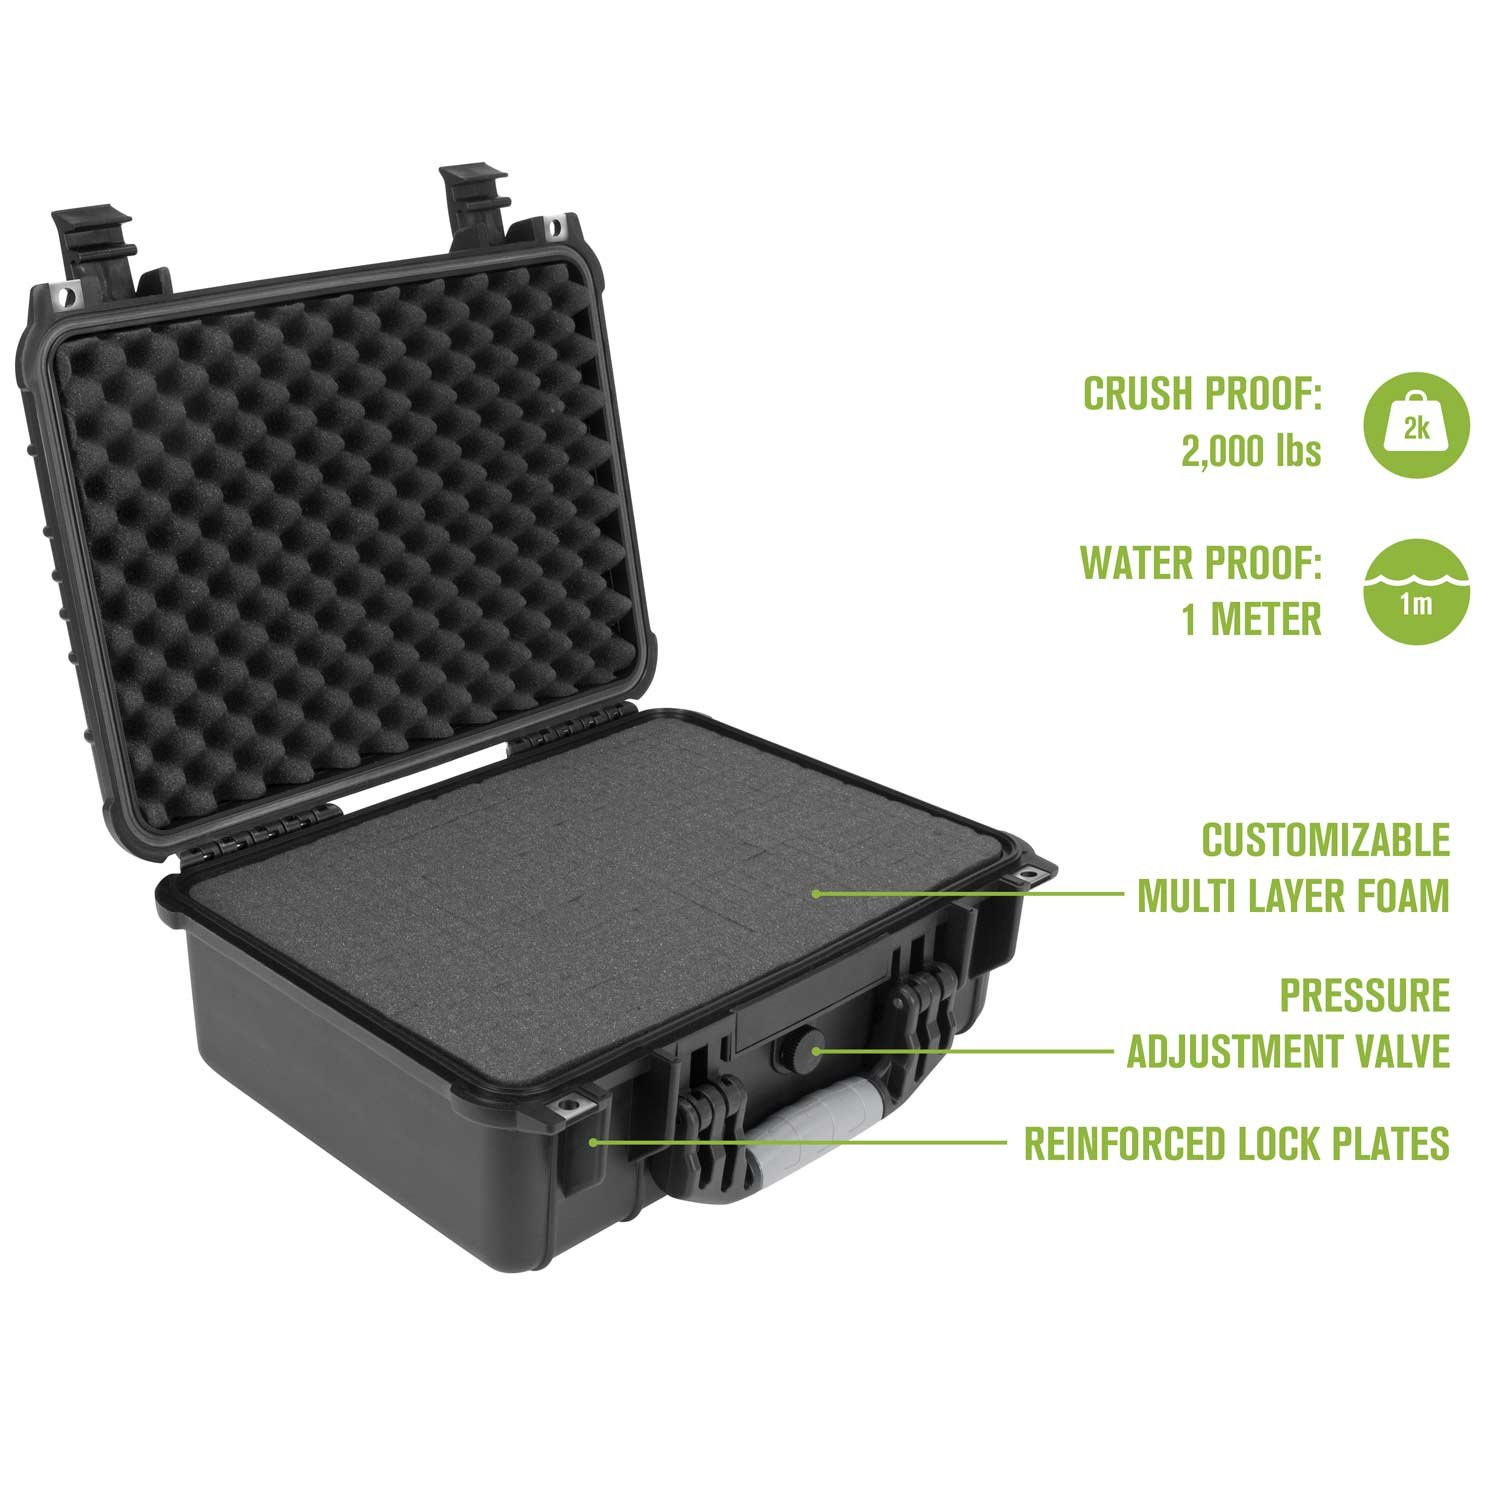 Elkton Outdoors Hard Gun Case: Fully Customizable Pistol Case: Holds 4 Handguns and 8 Magazines: Crush Resistant & Waterproof! by Elkton Outdoors (Image #2)